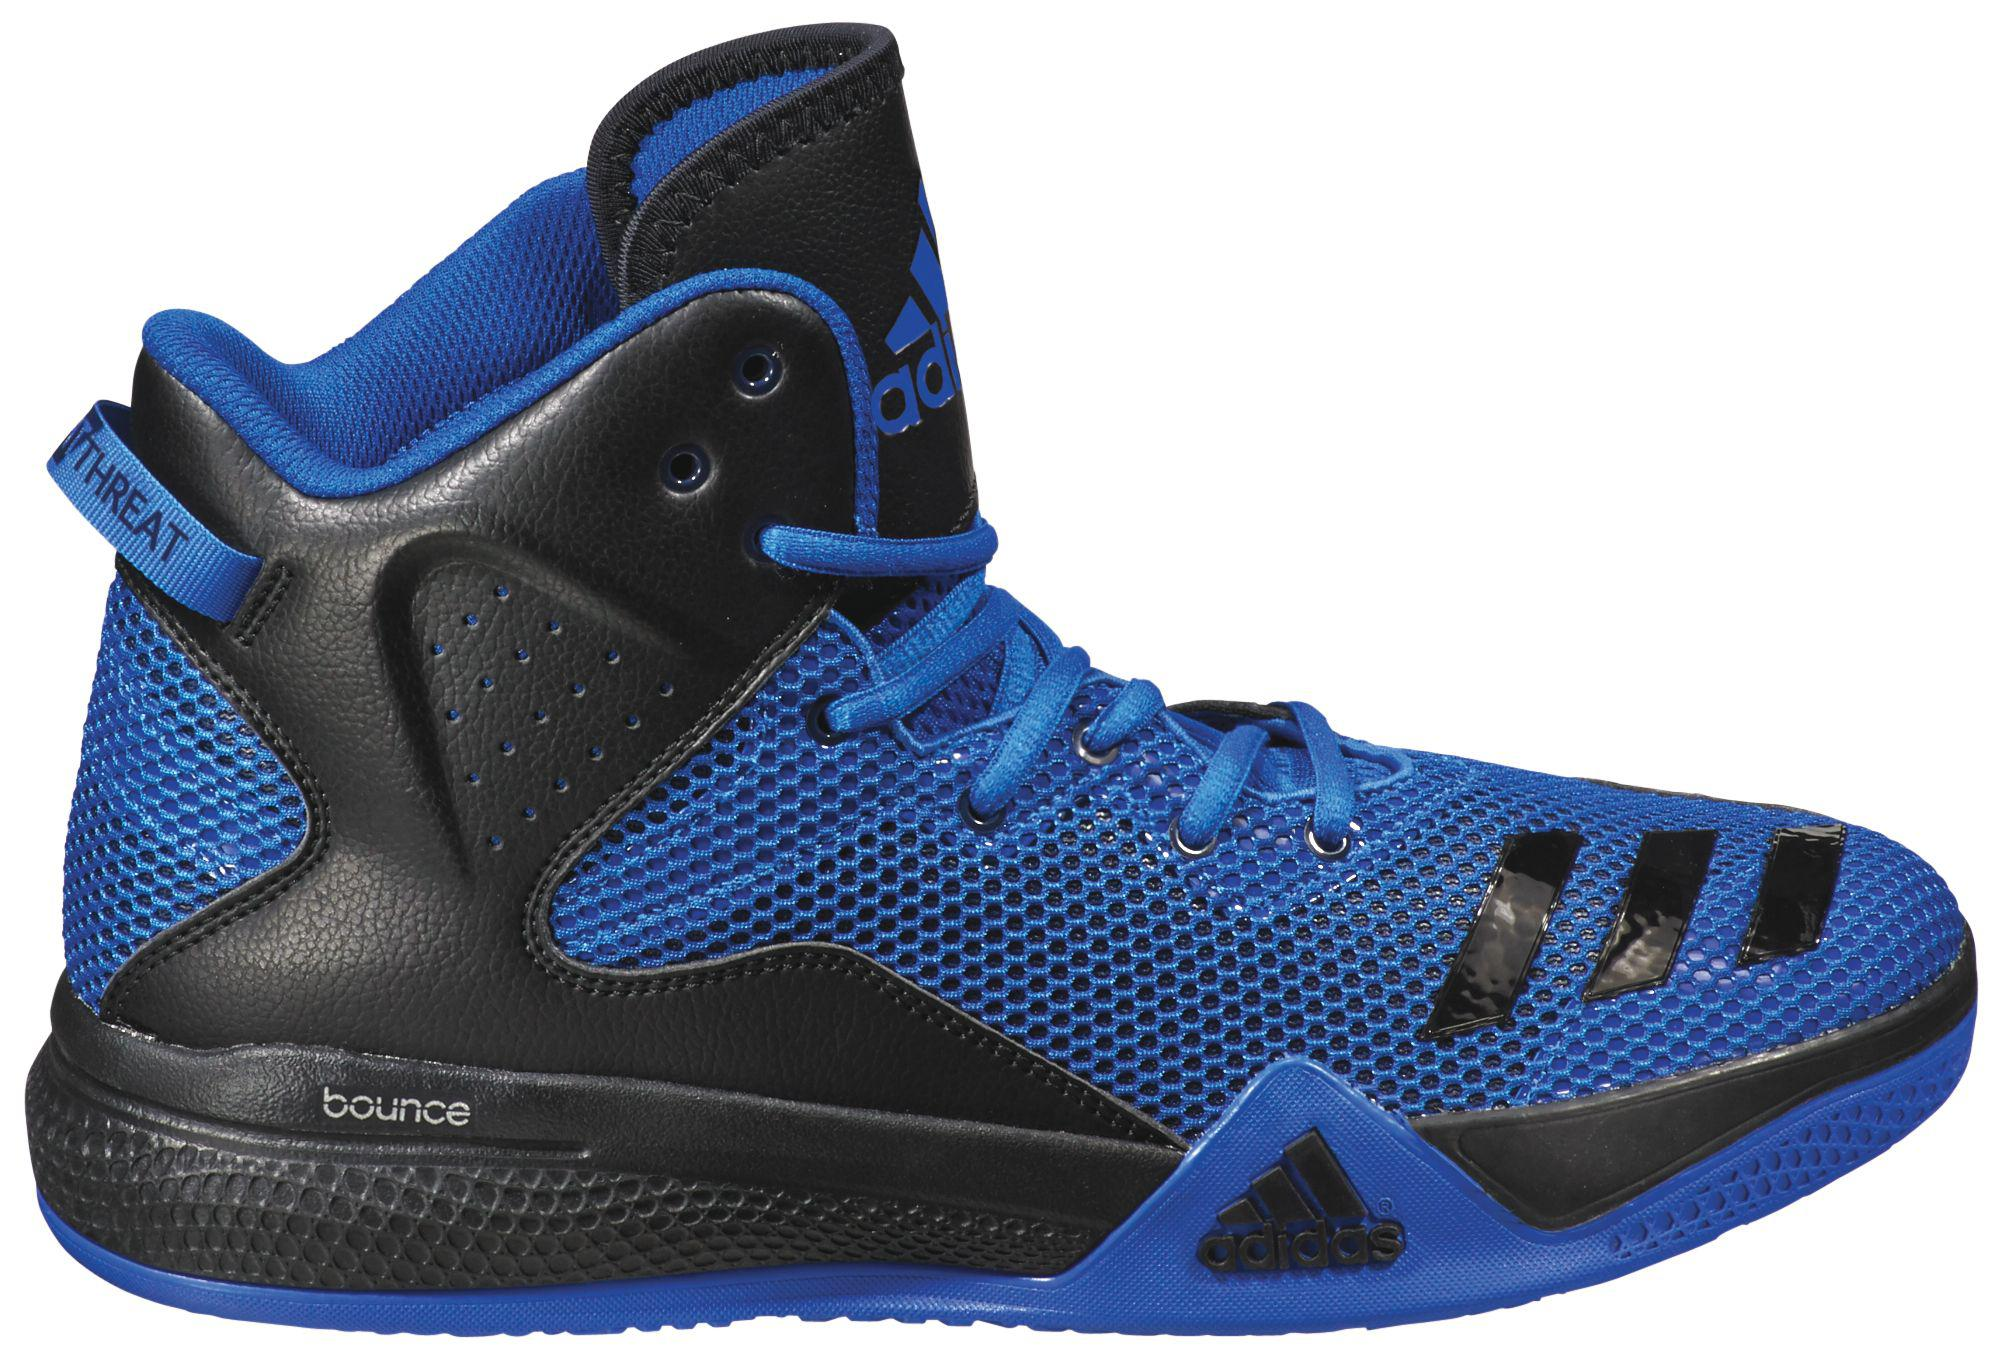 Lyst - adidas Dt Bball Mid Blue Basketball Shoe in Blue for Men a6ca4ea19